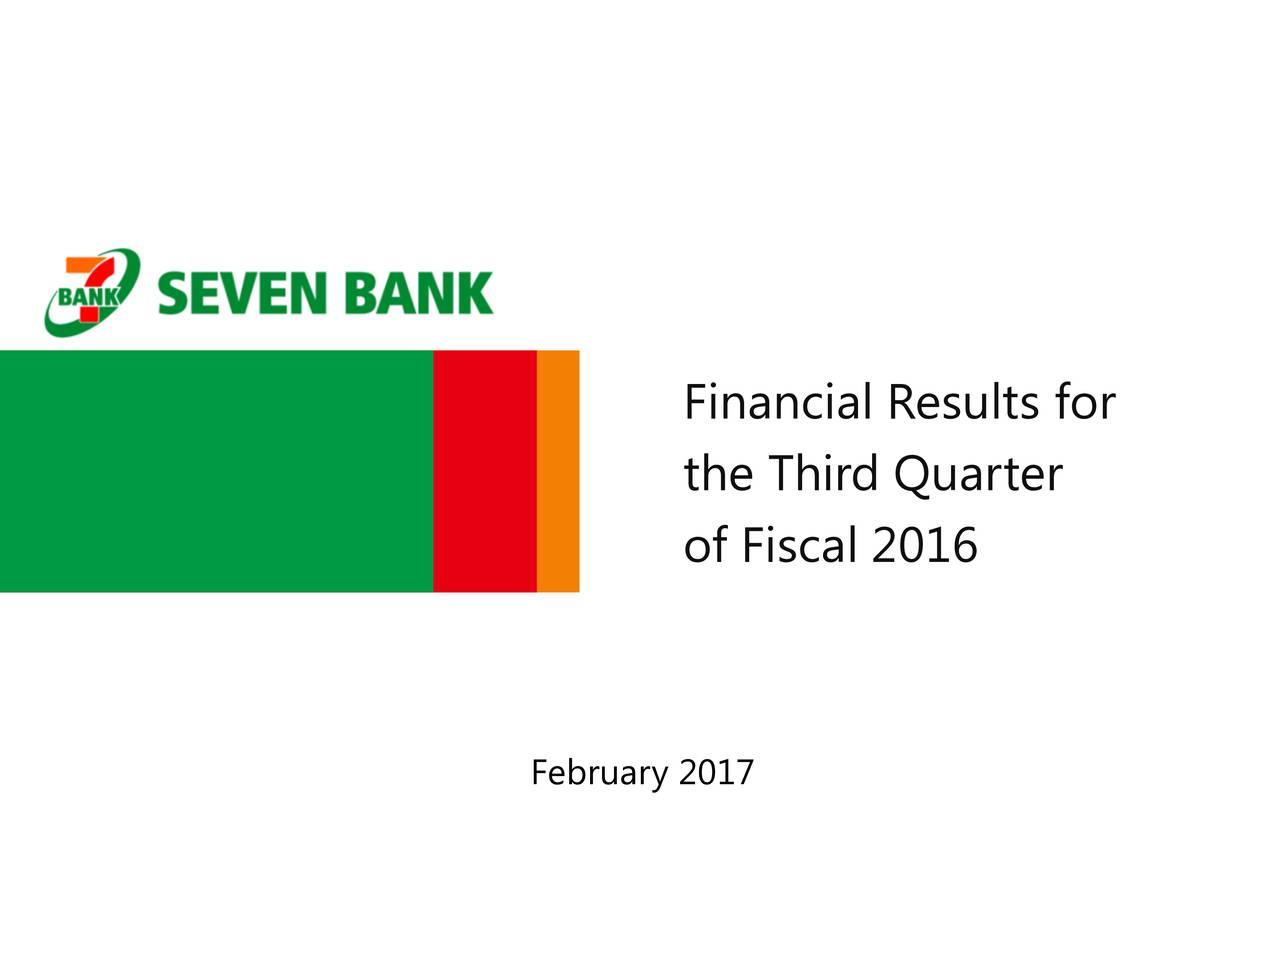 Financial Results for the Third Quarter of Fiscal 2016 February 2017